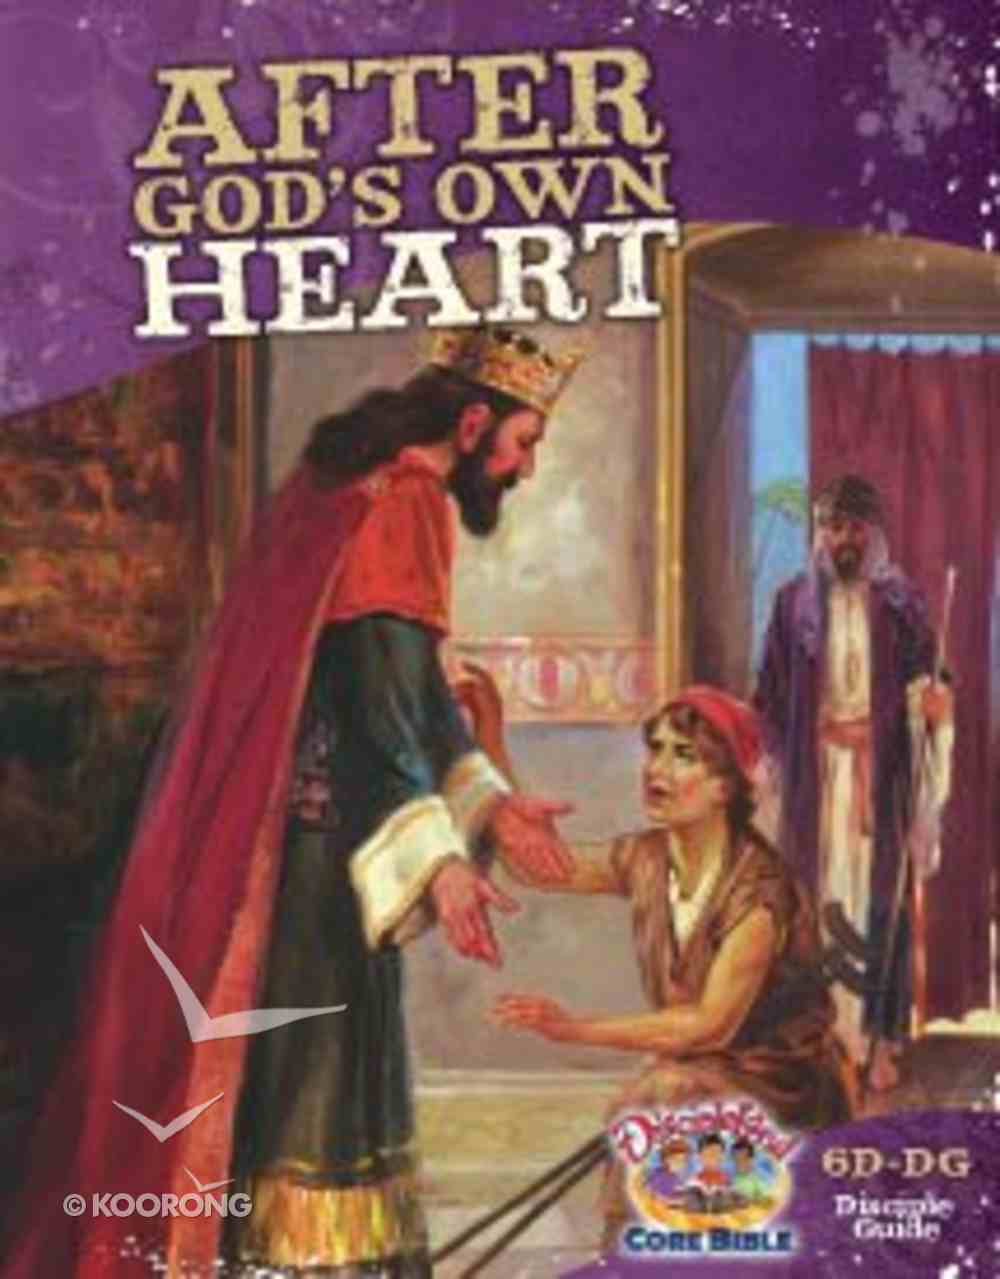 Dlc D6: Walking With God Student's Guide Ages 11-14 (After God's Own Heart) (Discipleland Level 6, Ages 11-14, Qtrs Abcd Series) Paperback